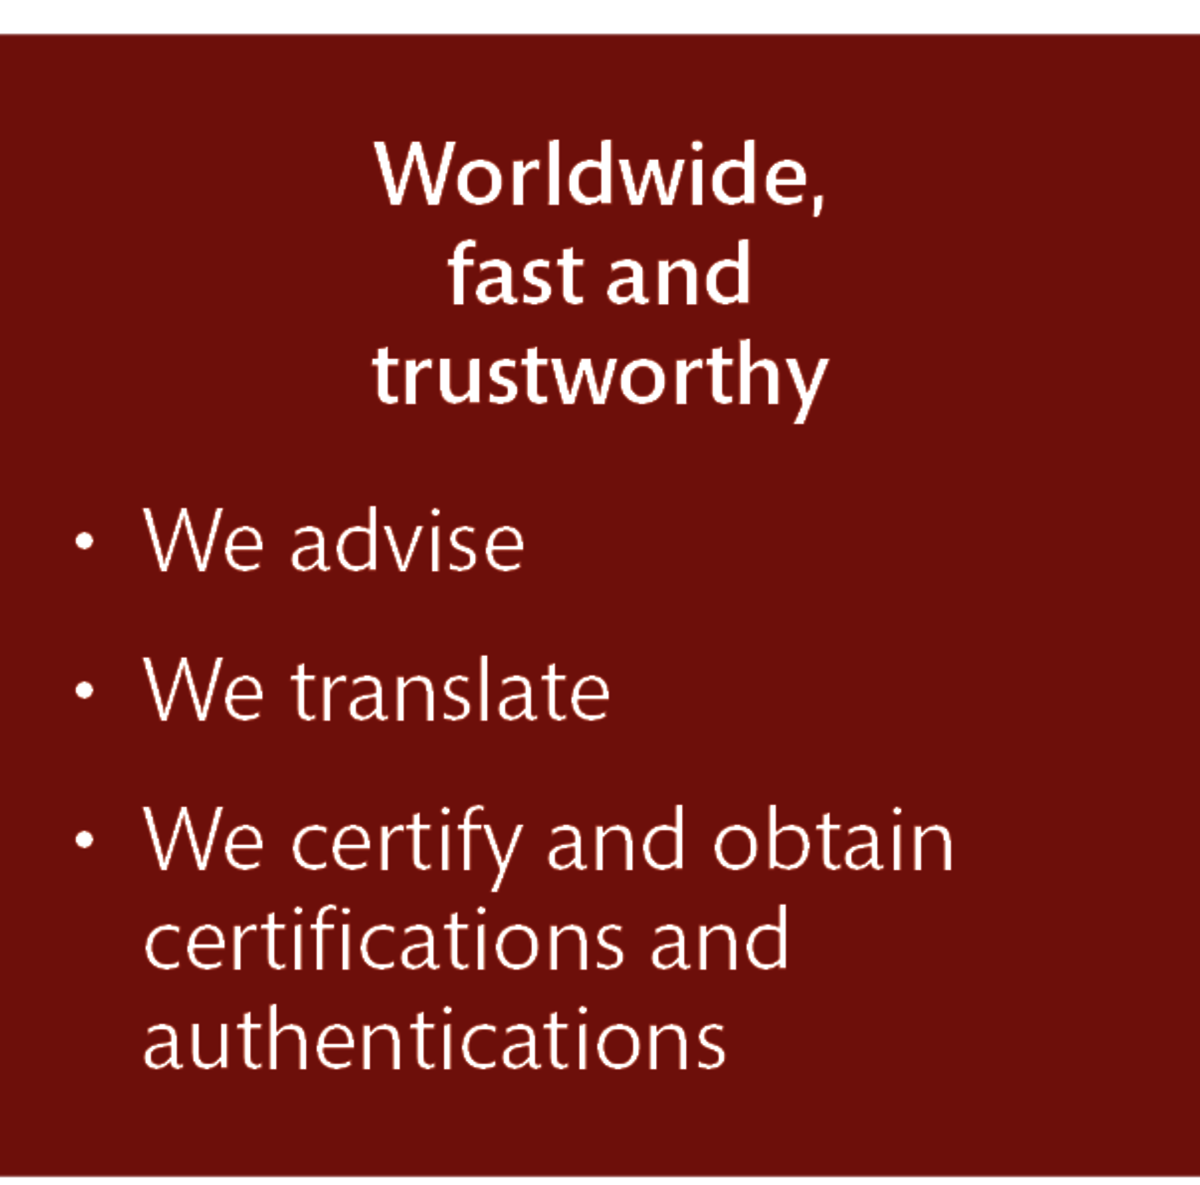 LT Lawtank - Certified translations - Worldwide, fast, trustworthy